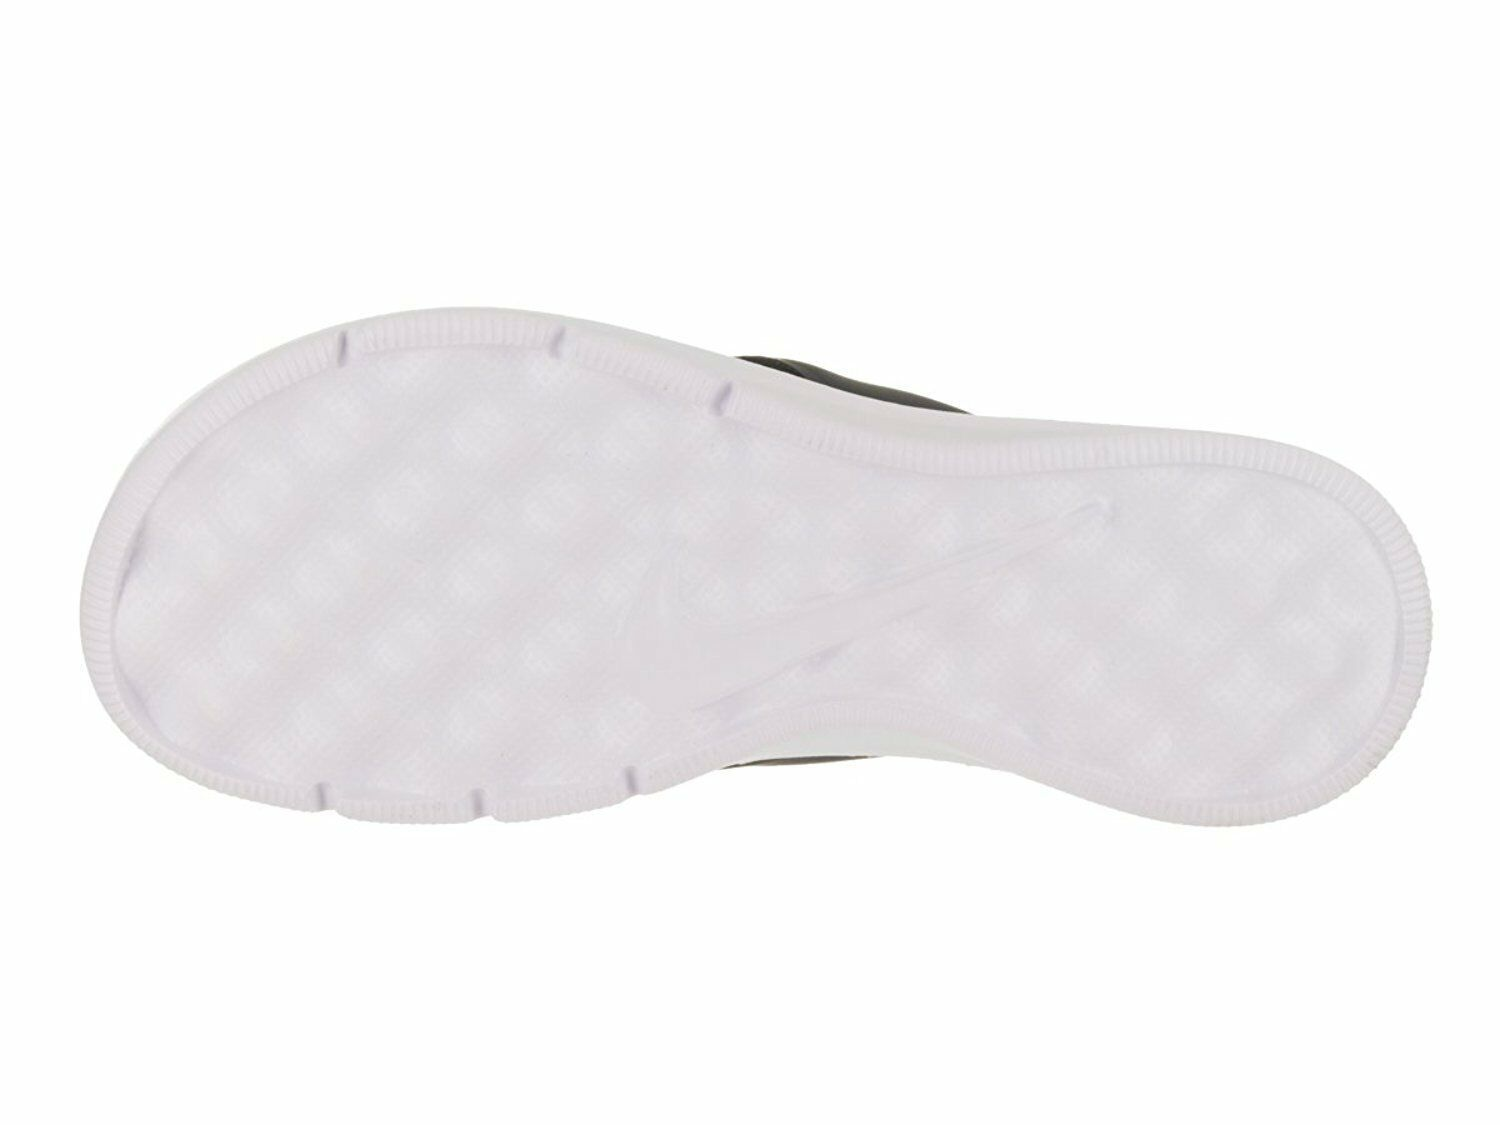 Women's Nike Ultra Comfort Thong Sandals, 882697 004 Size 6 Anthracite/White image 4